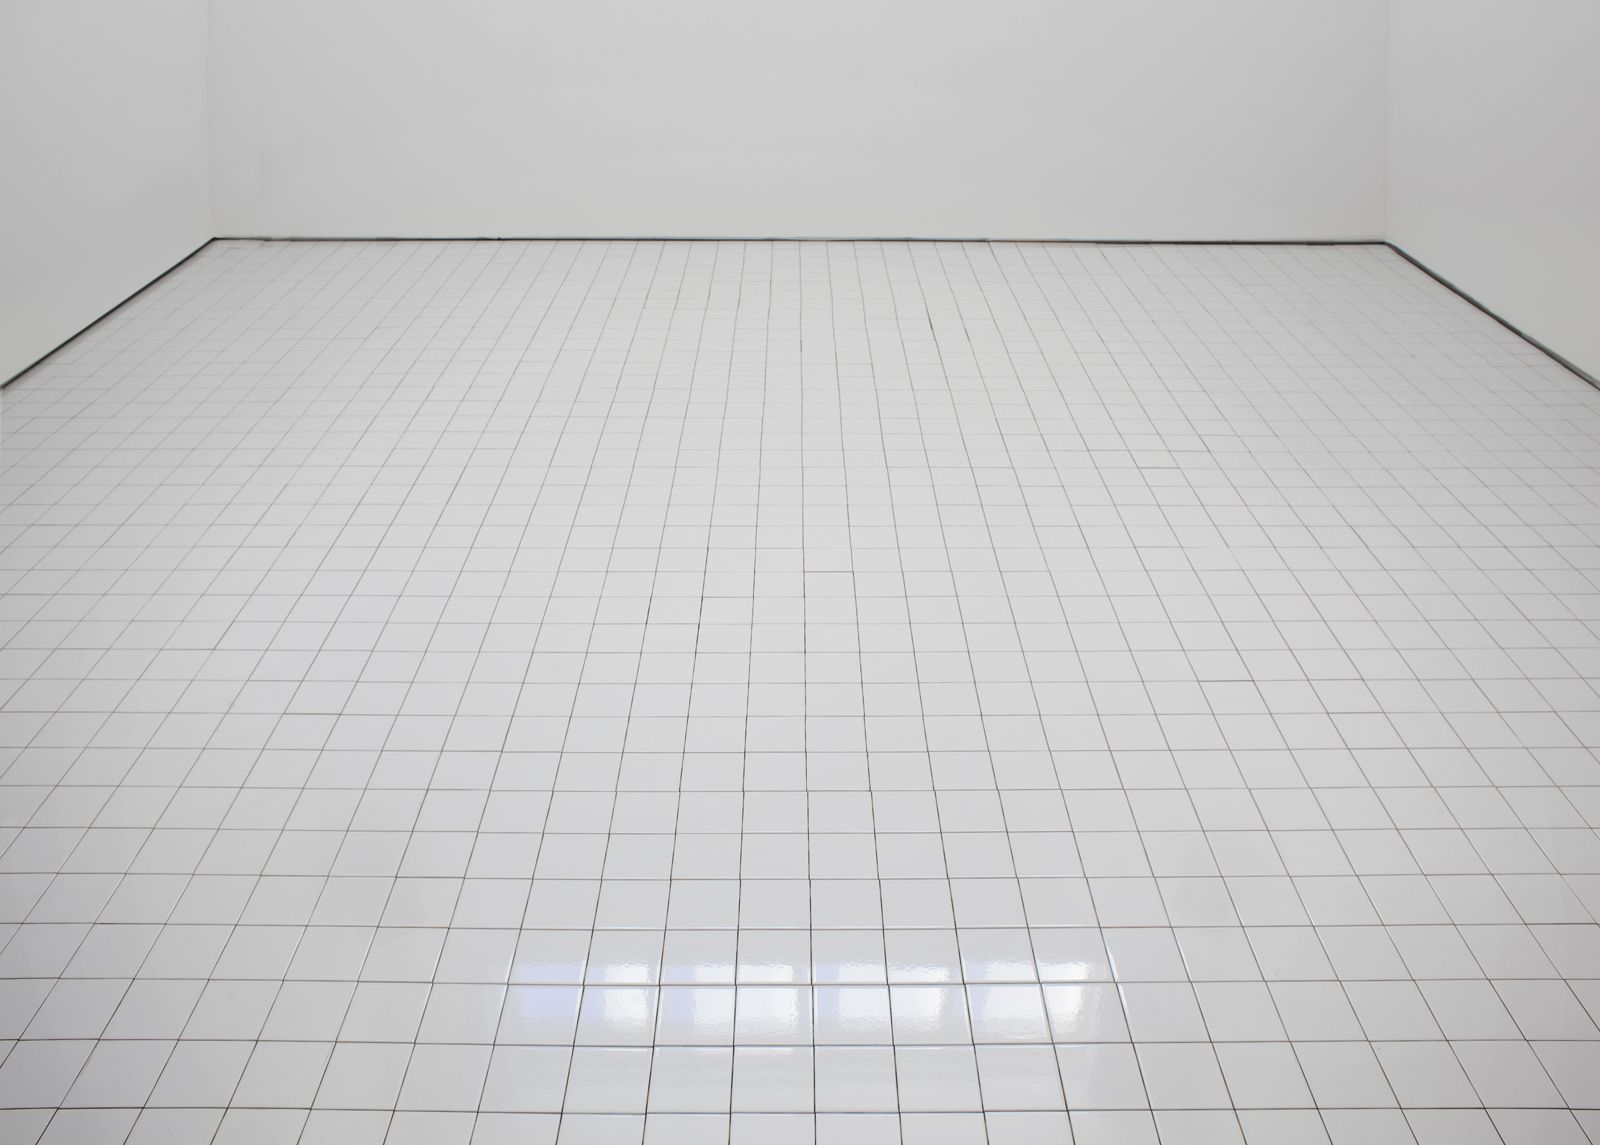 Drowning(Installation View), Marianne Boesky Gallery, 2011